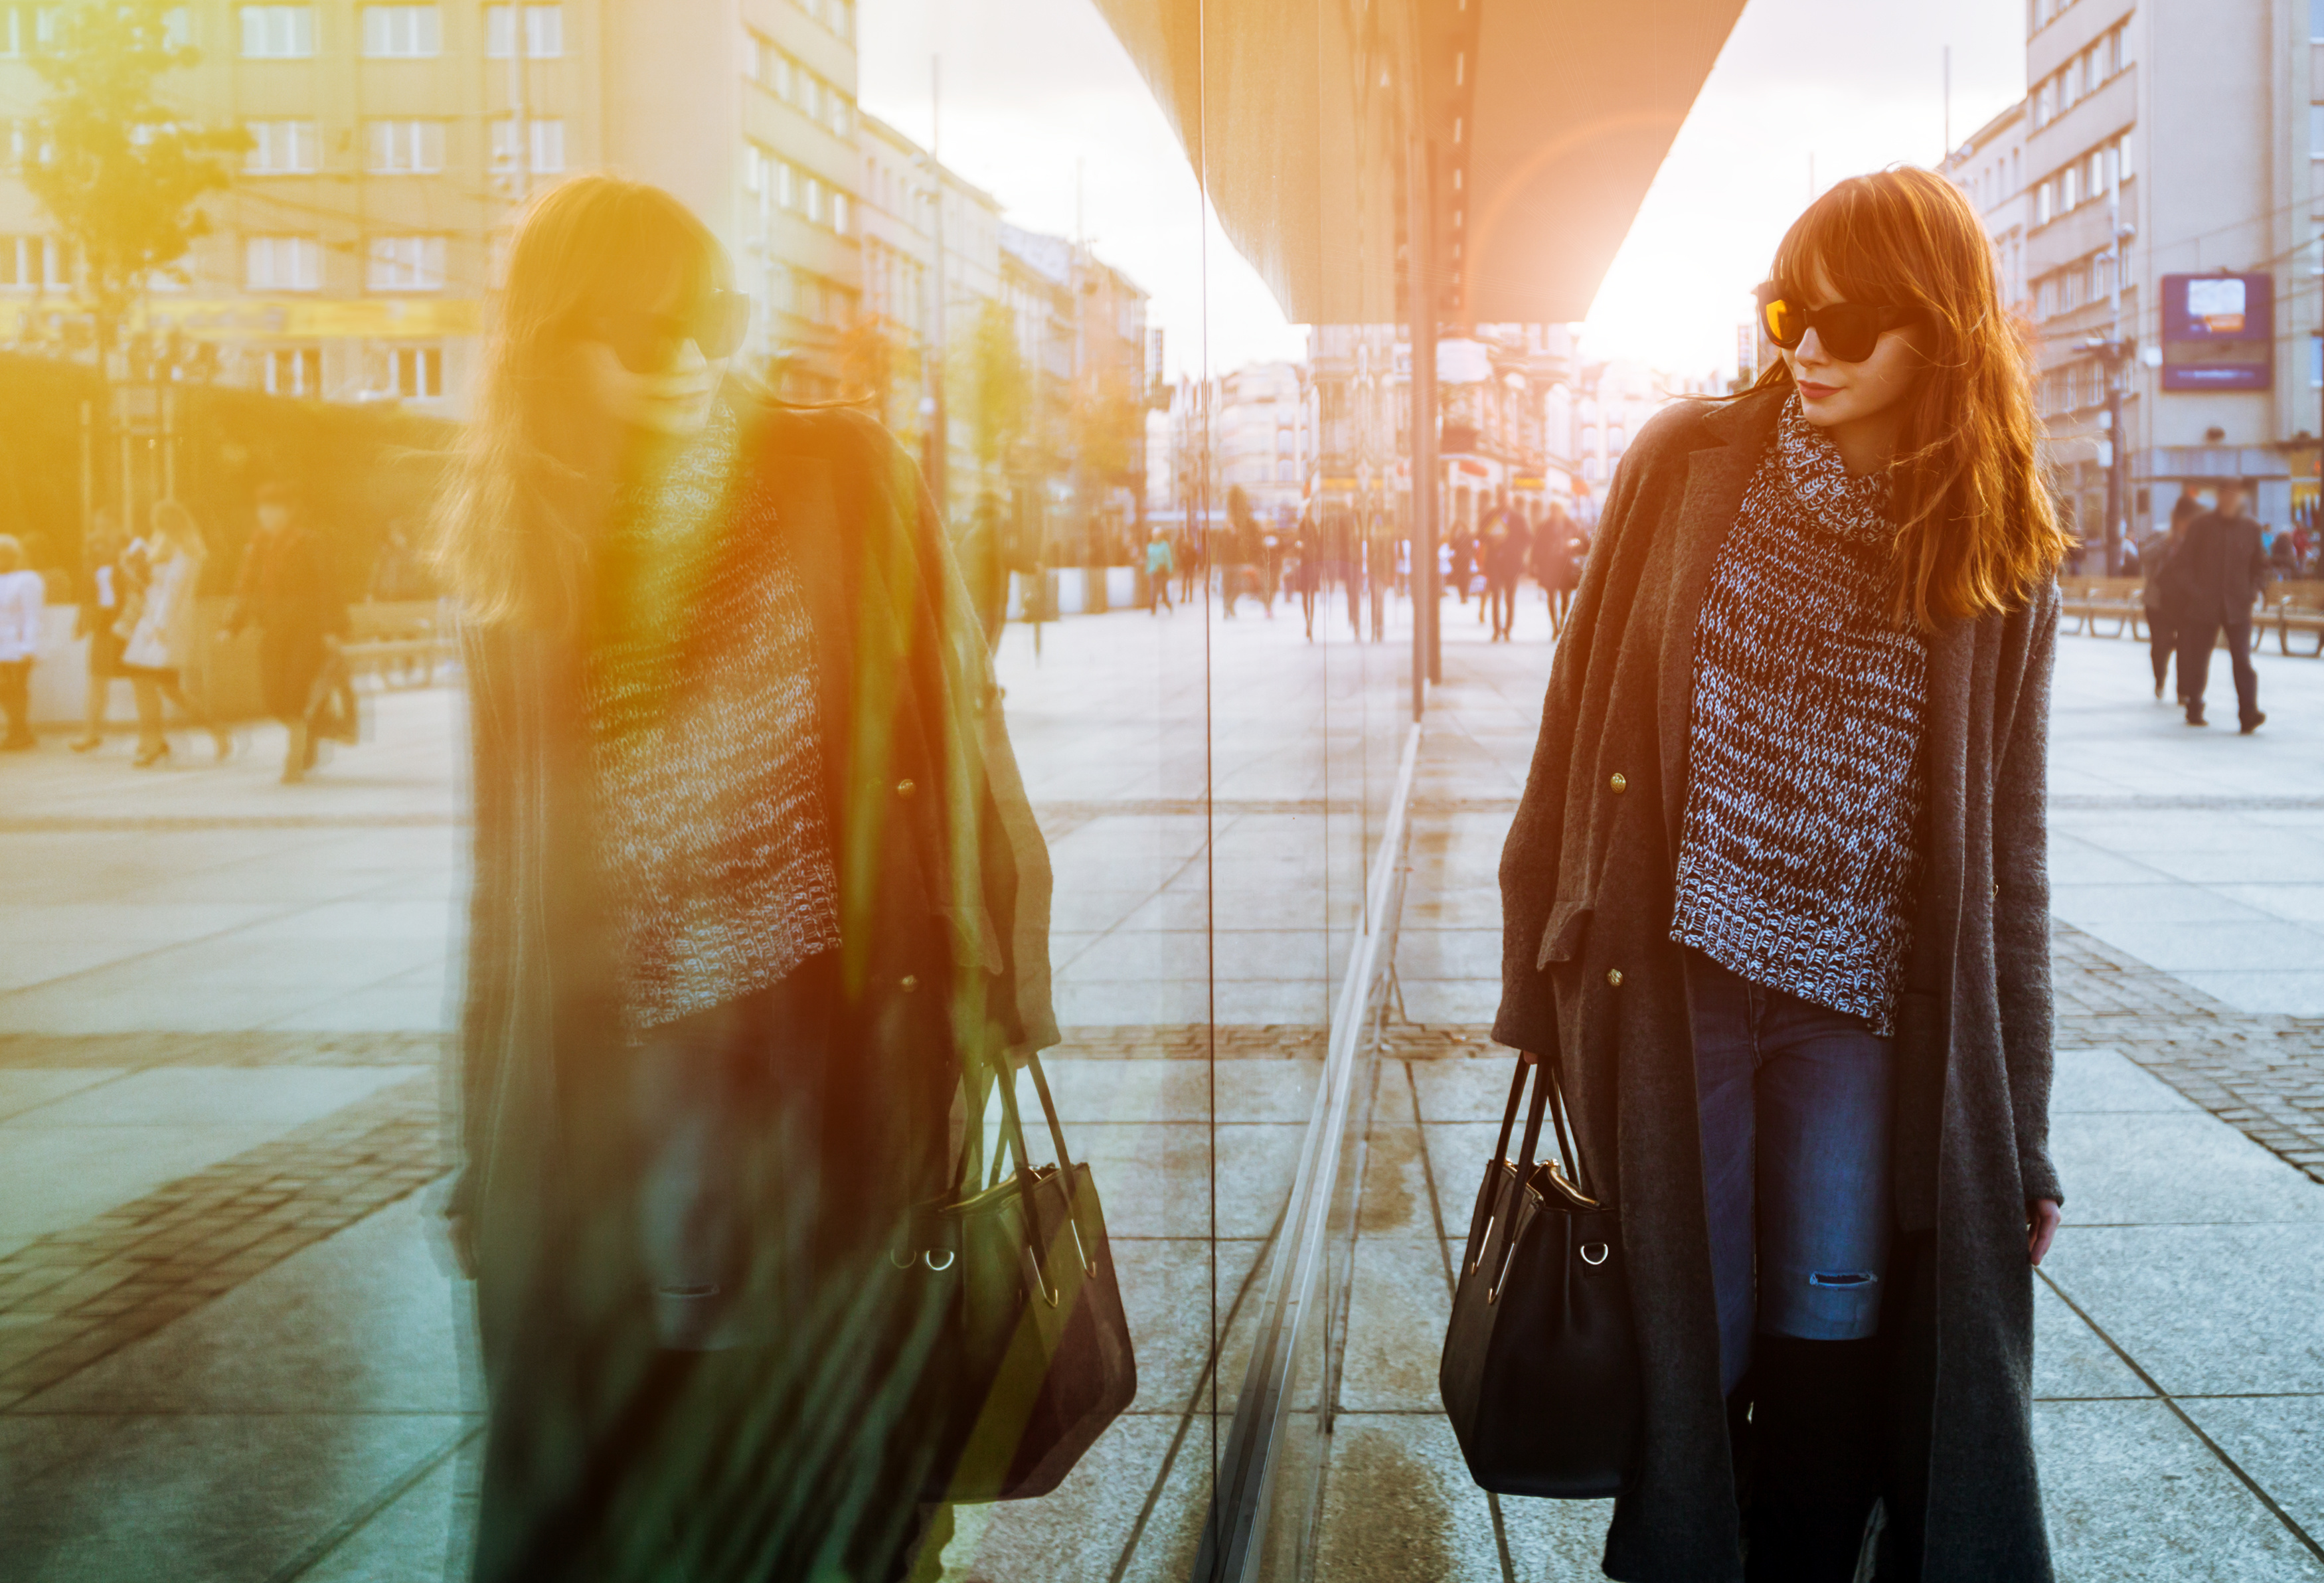 Woman walking on street and looking at shopping window